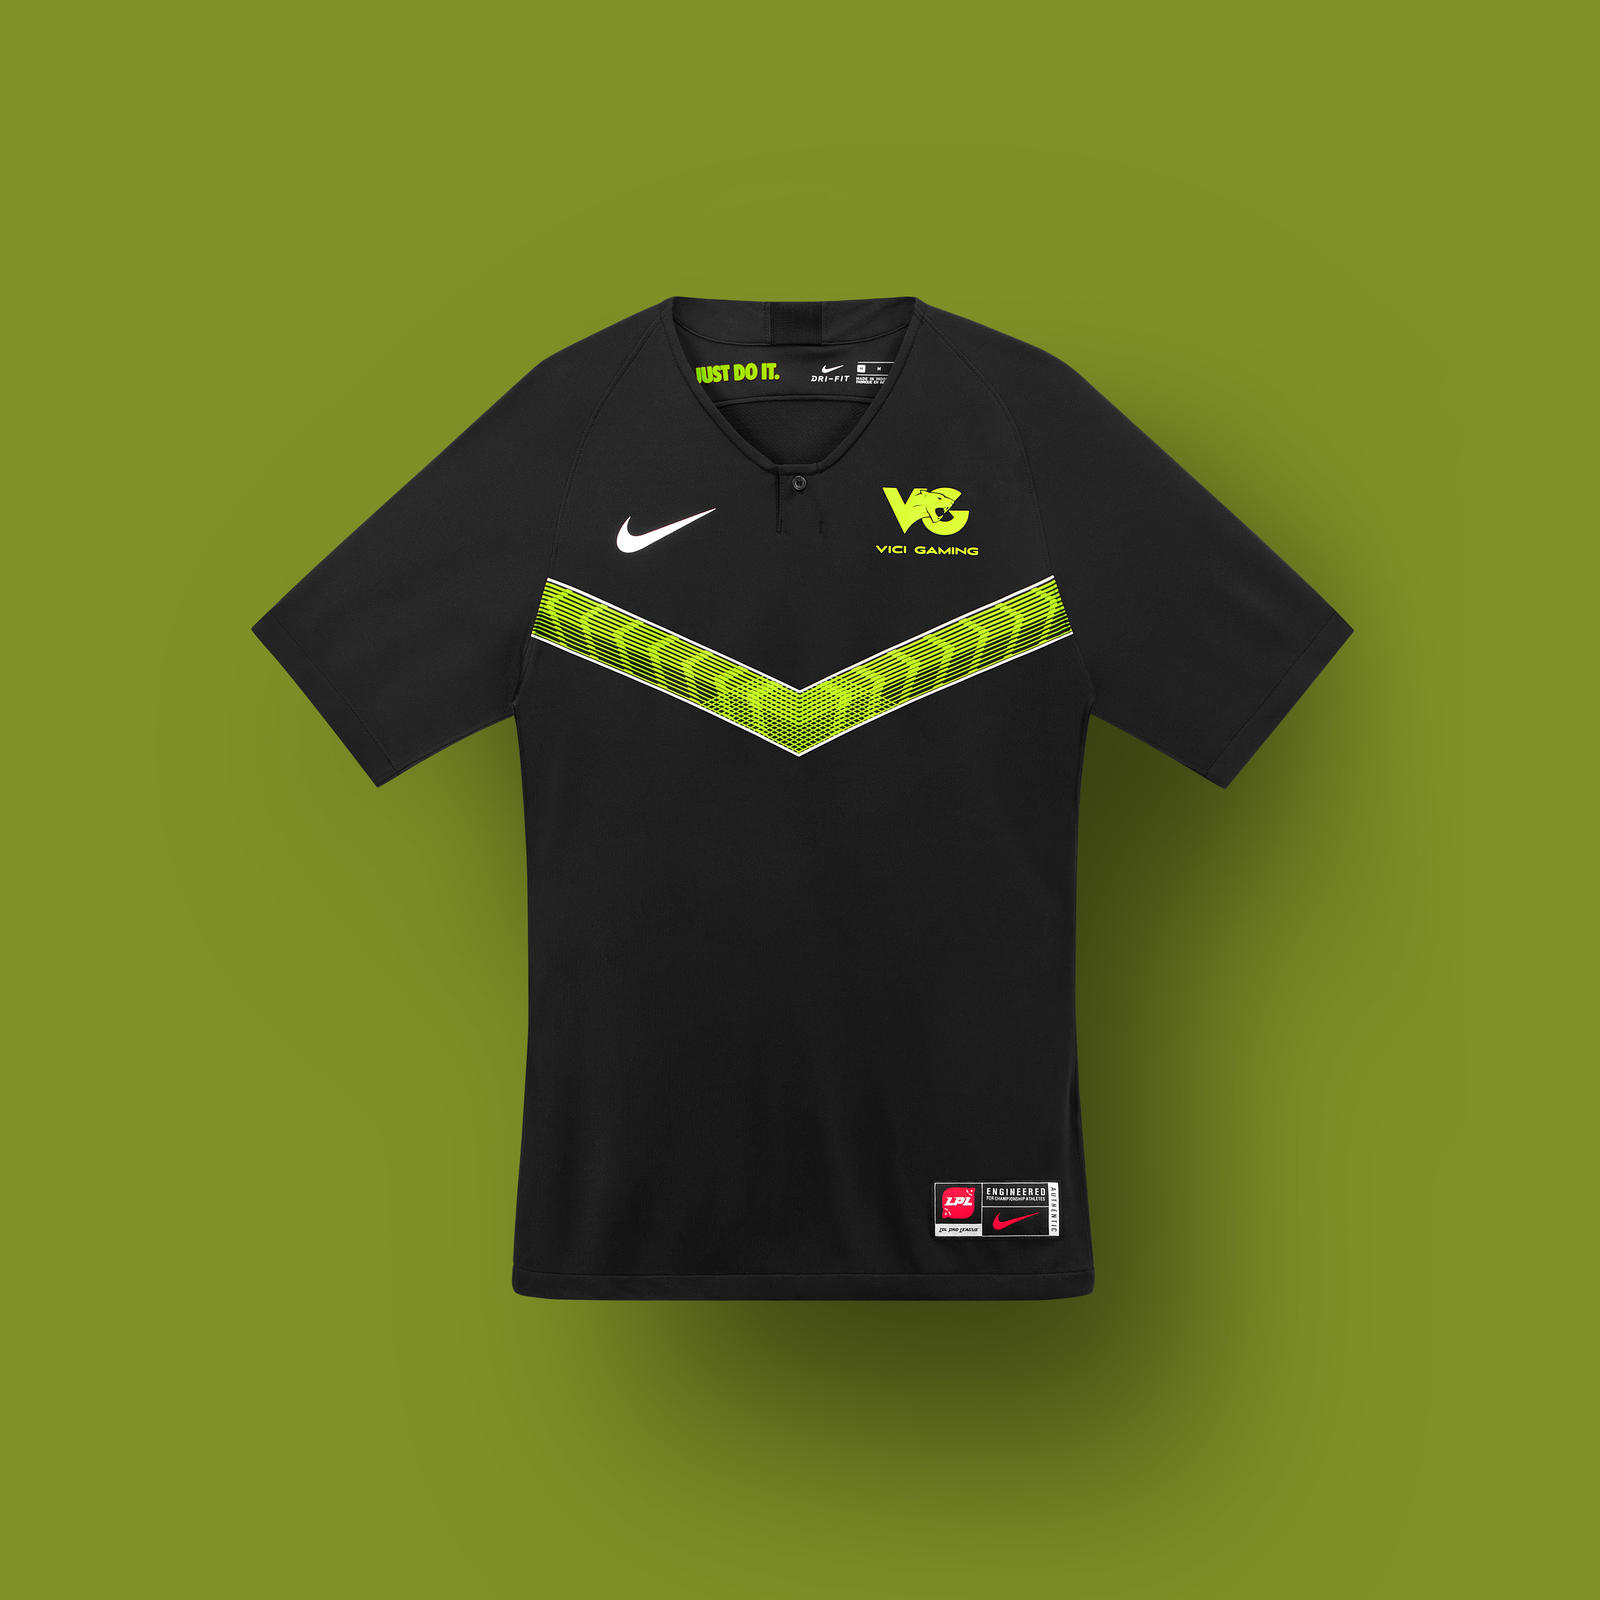 Nike League of Legends Pro League Team Kits 2019-20 Official Images 32